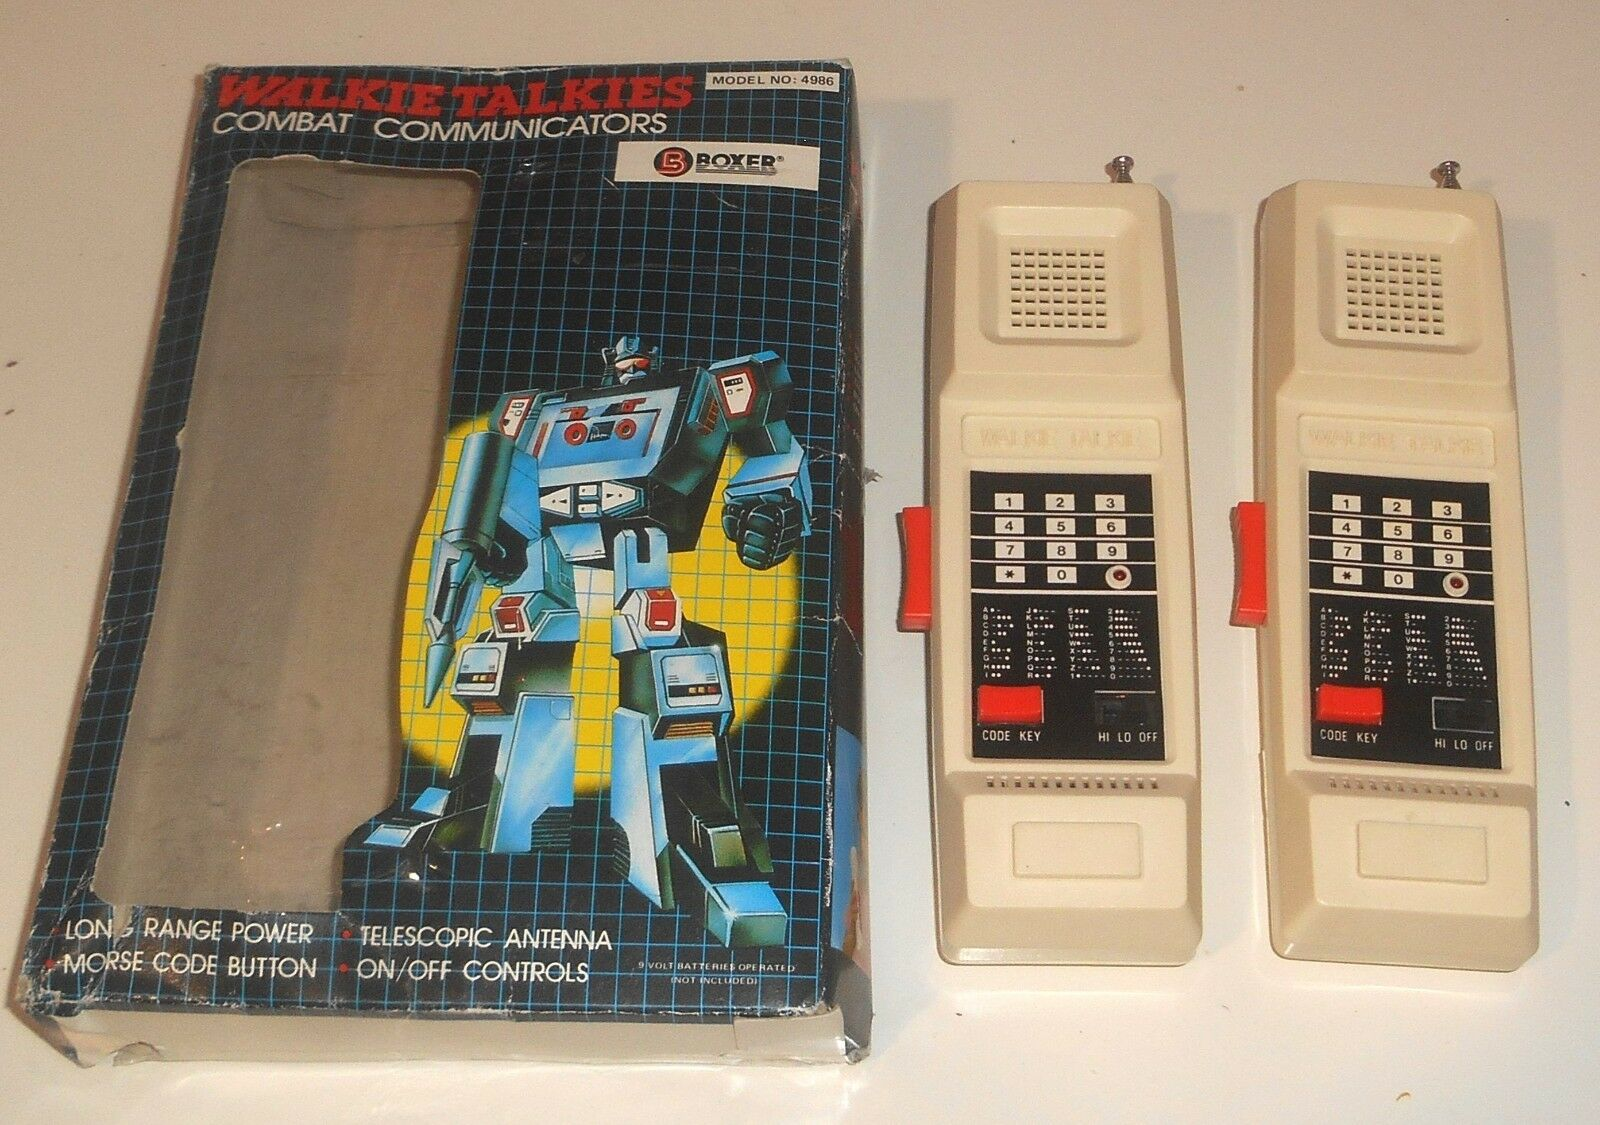 Vintage 1980's Boxer Electronics  Walkie Talkie  COMBAT COMMUNICATORS Boxed 2